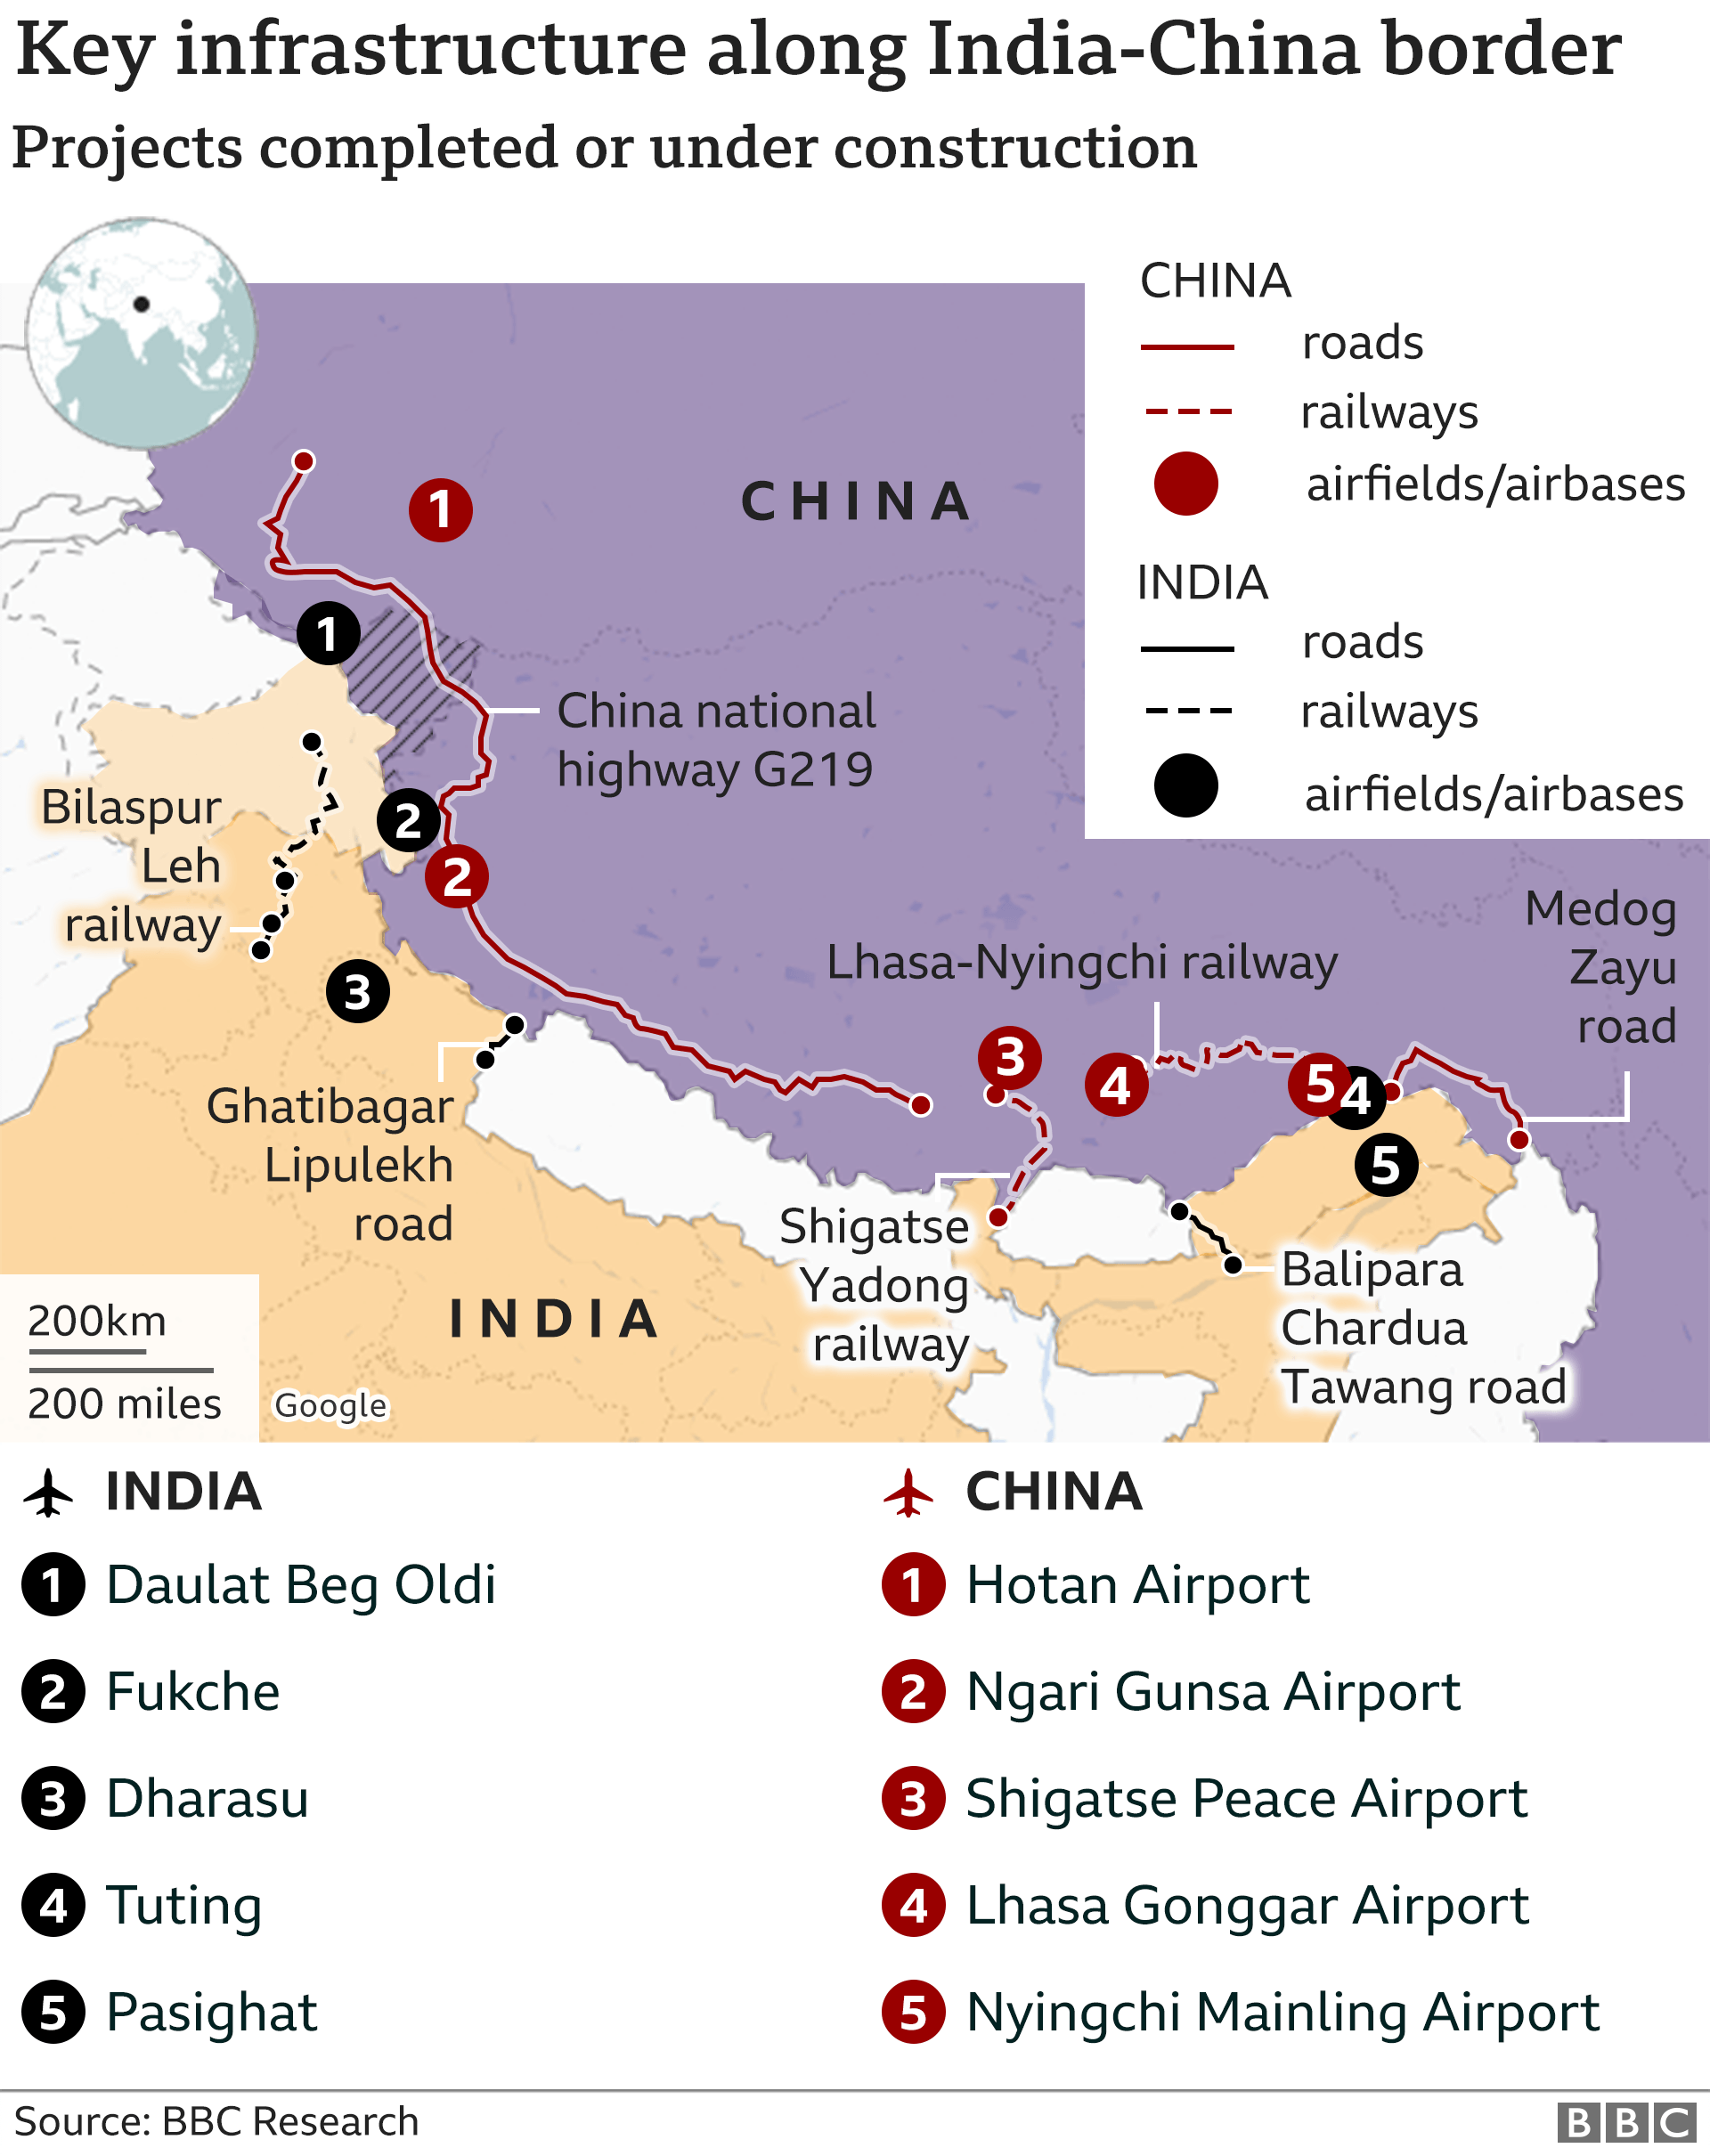 Key infrastructure along India-China border